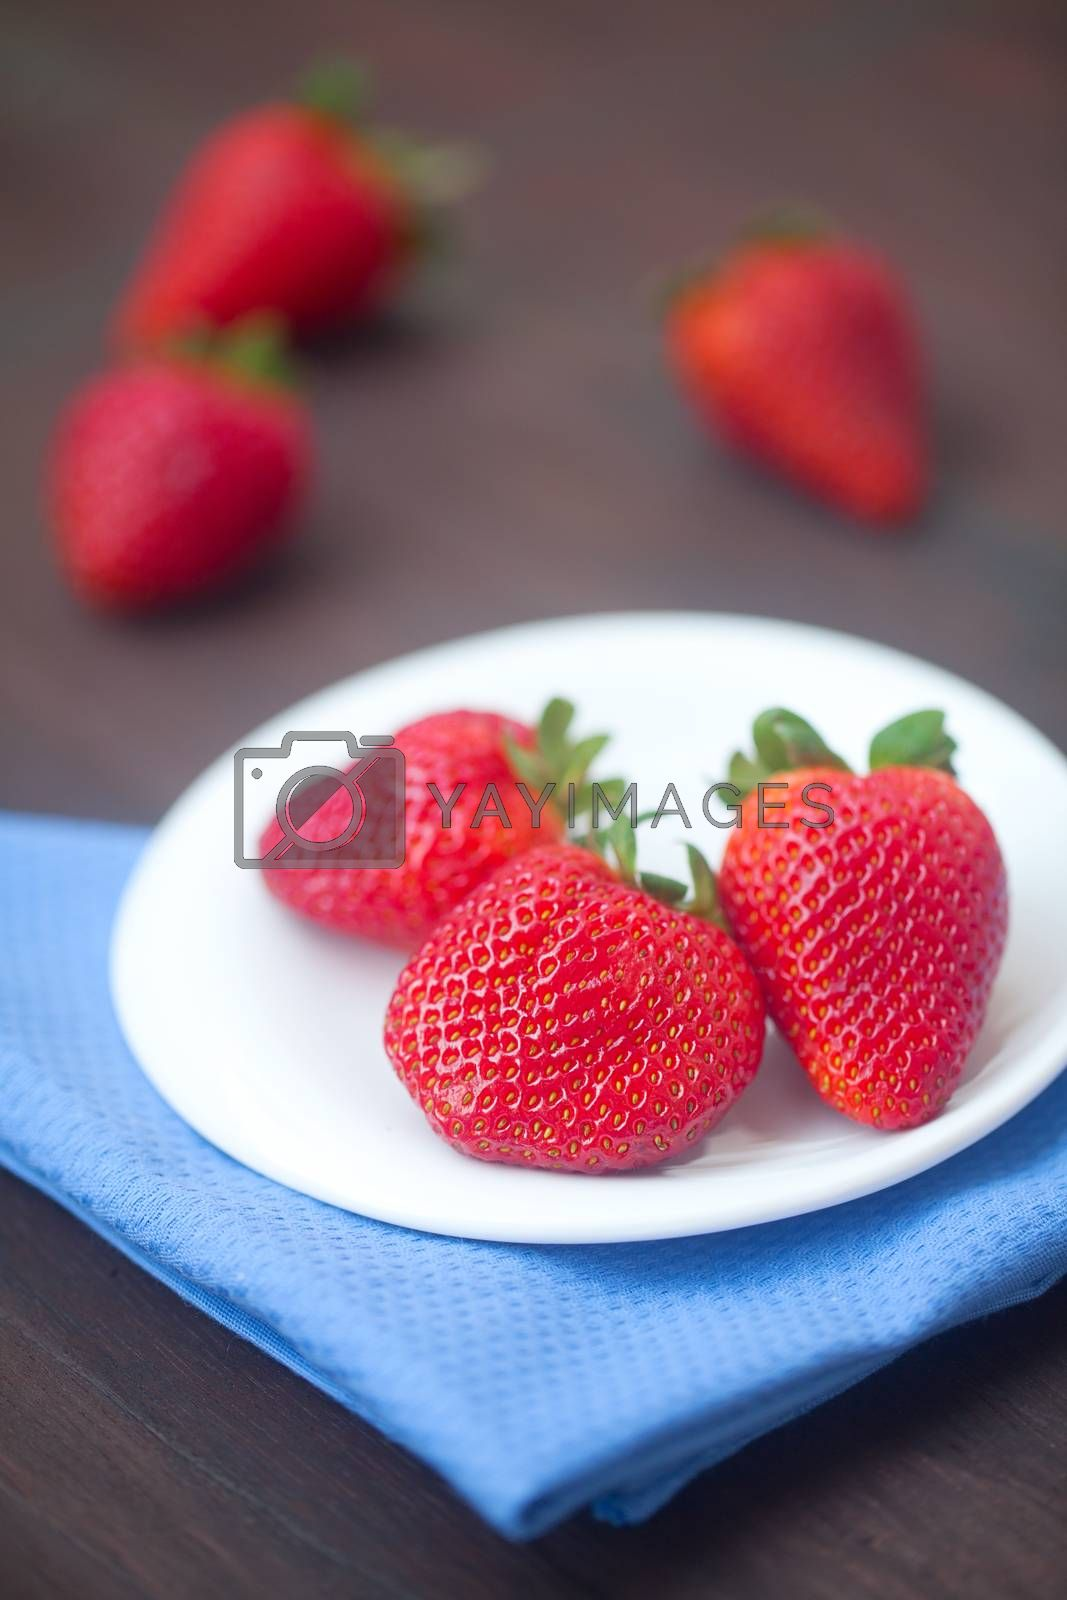 red juicy strawberry in a plate on a wooden surface by jannyjus